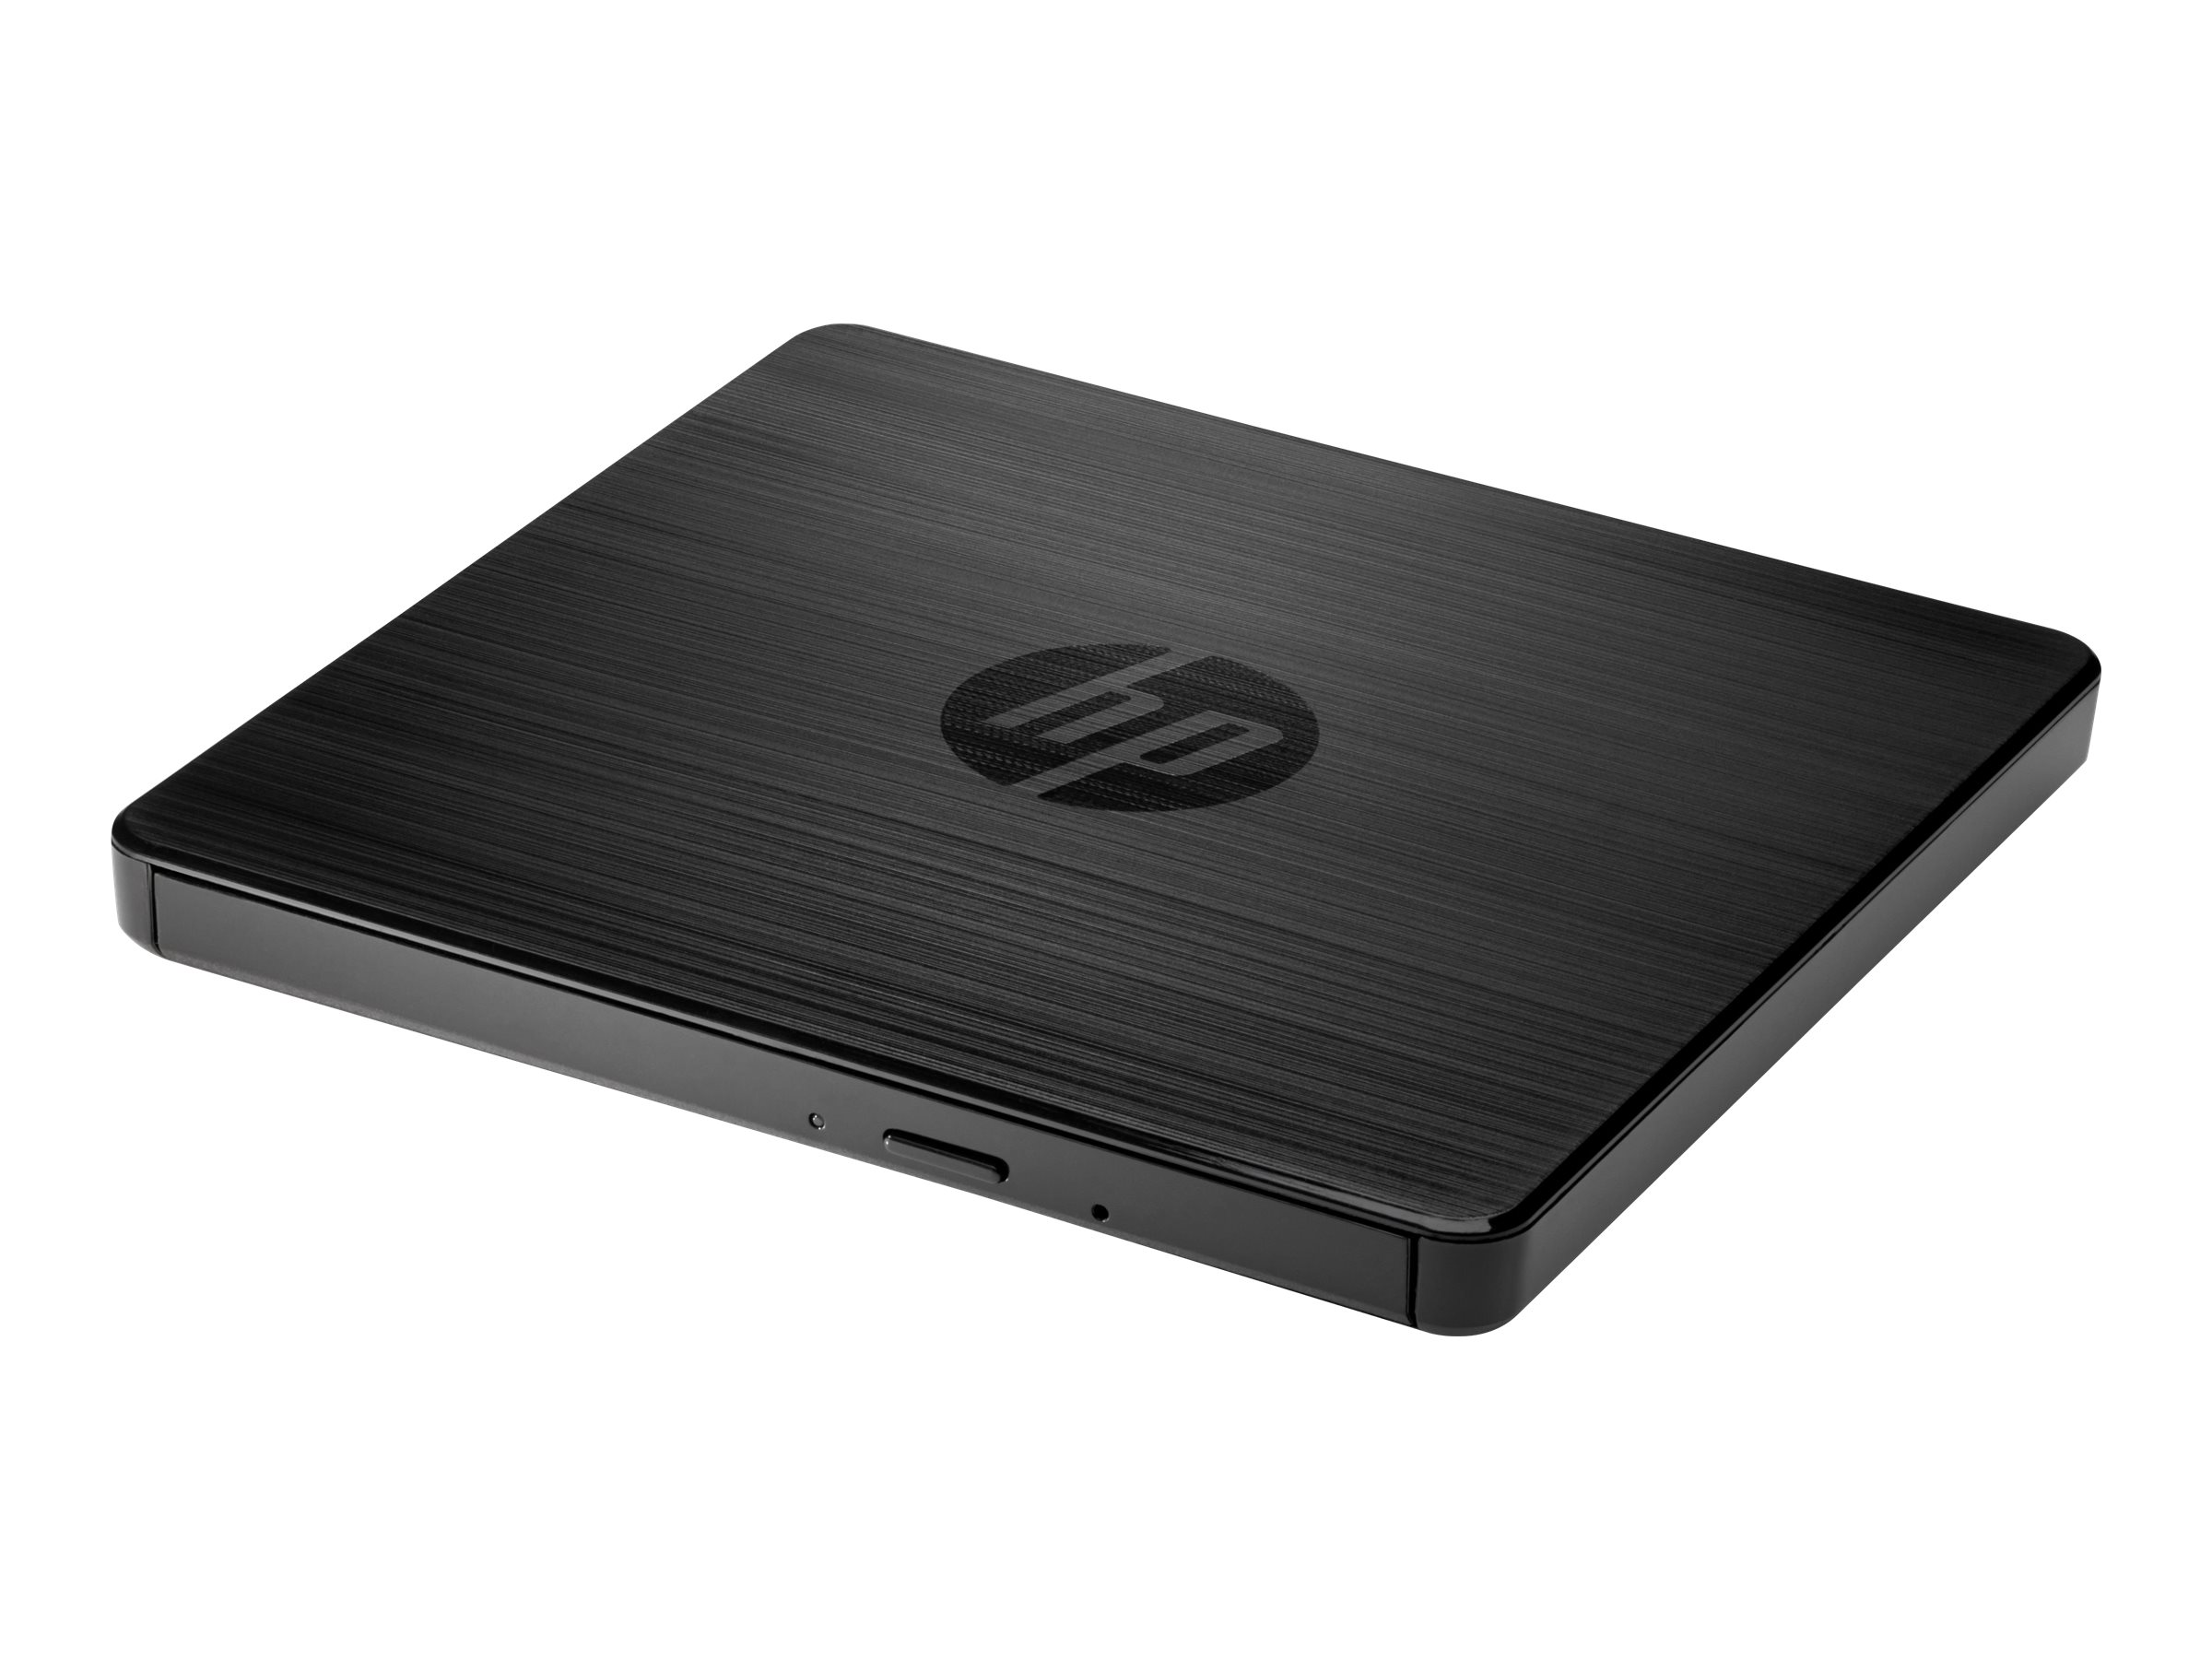 HP DVD±RW (±R DL) / DVD-RAM drive - USB 2.0 - external